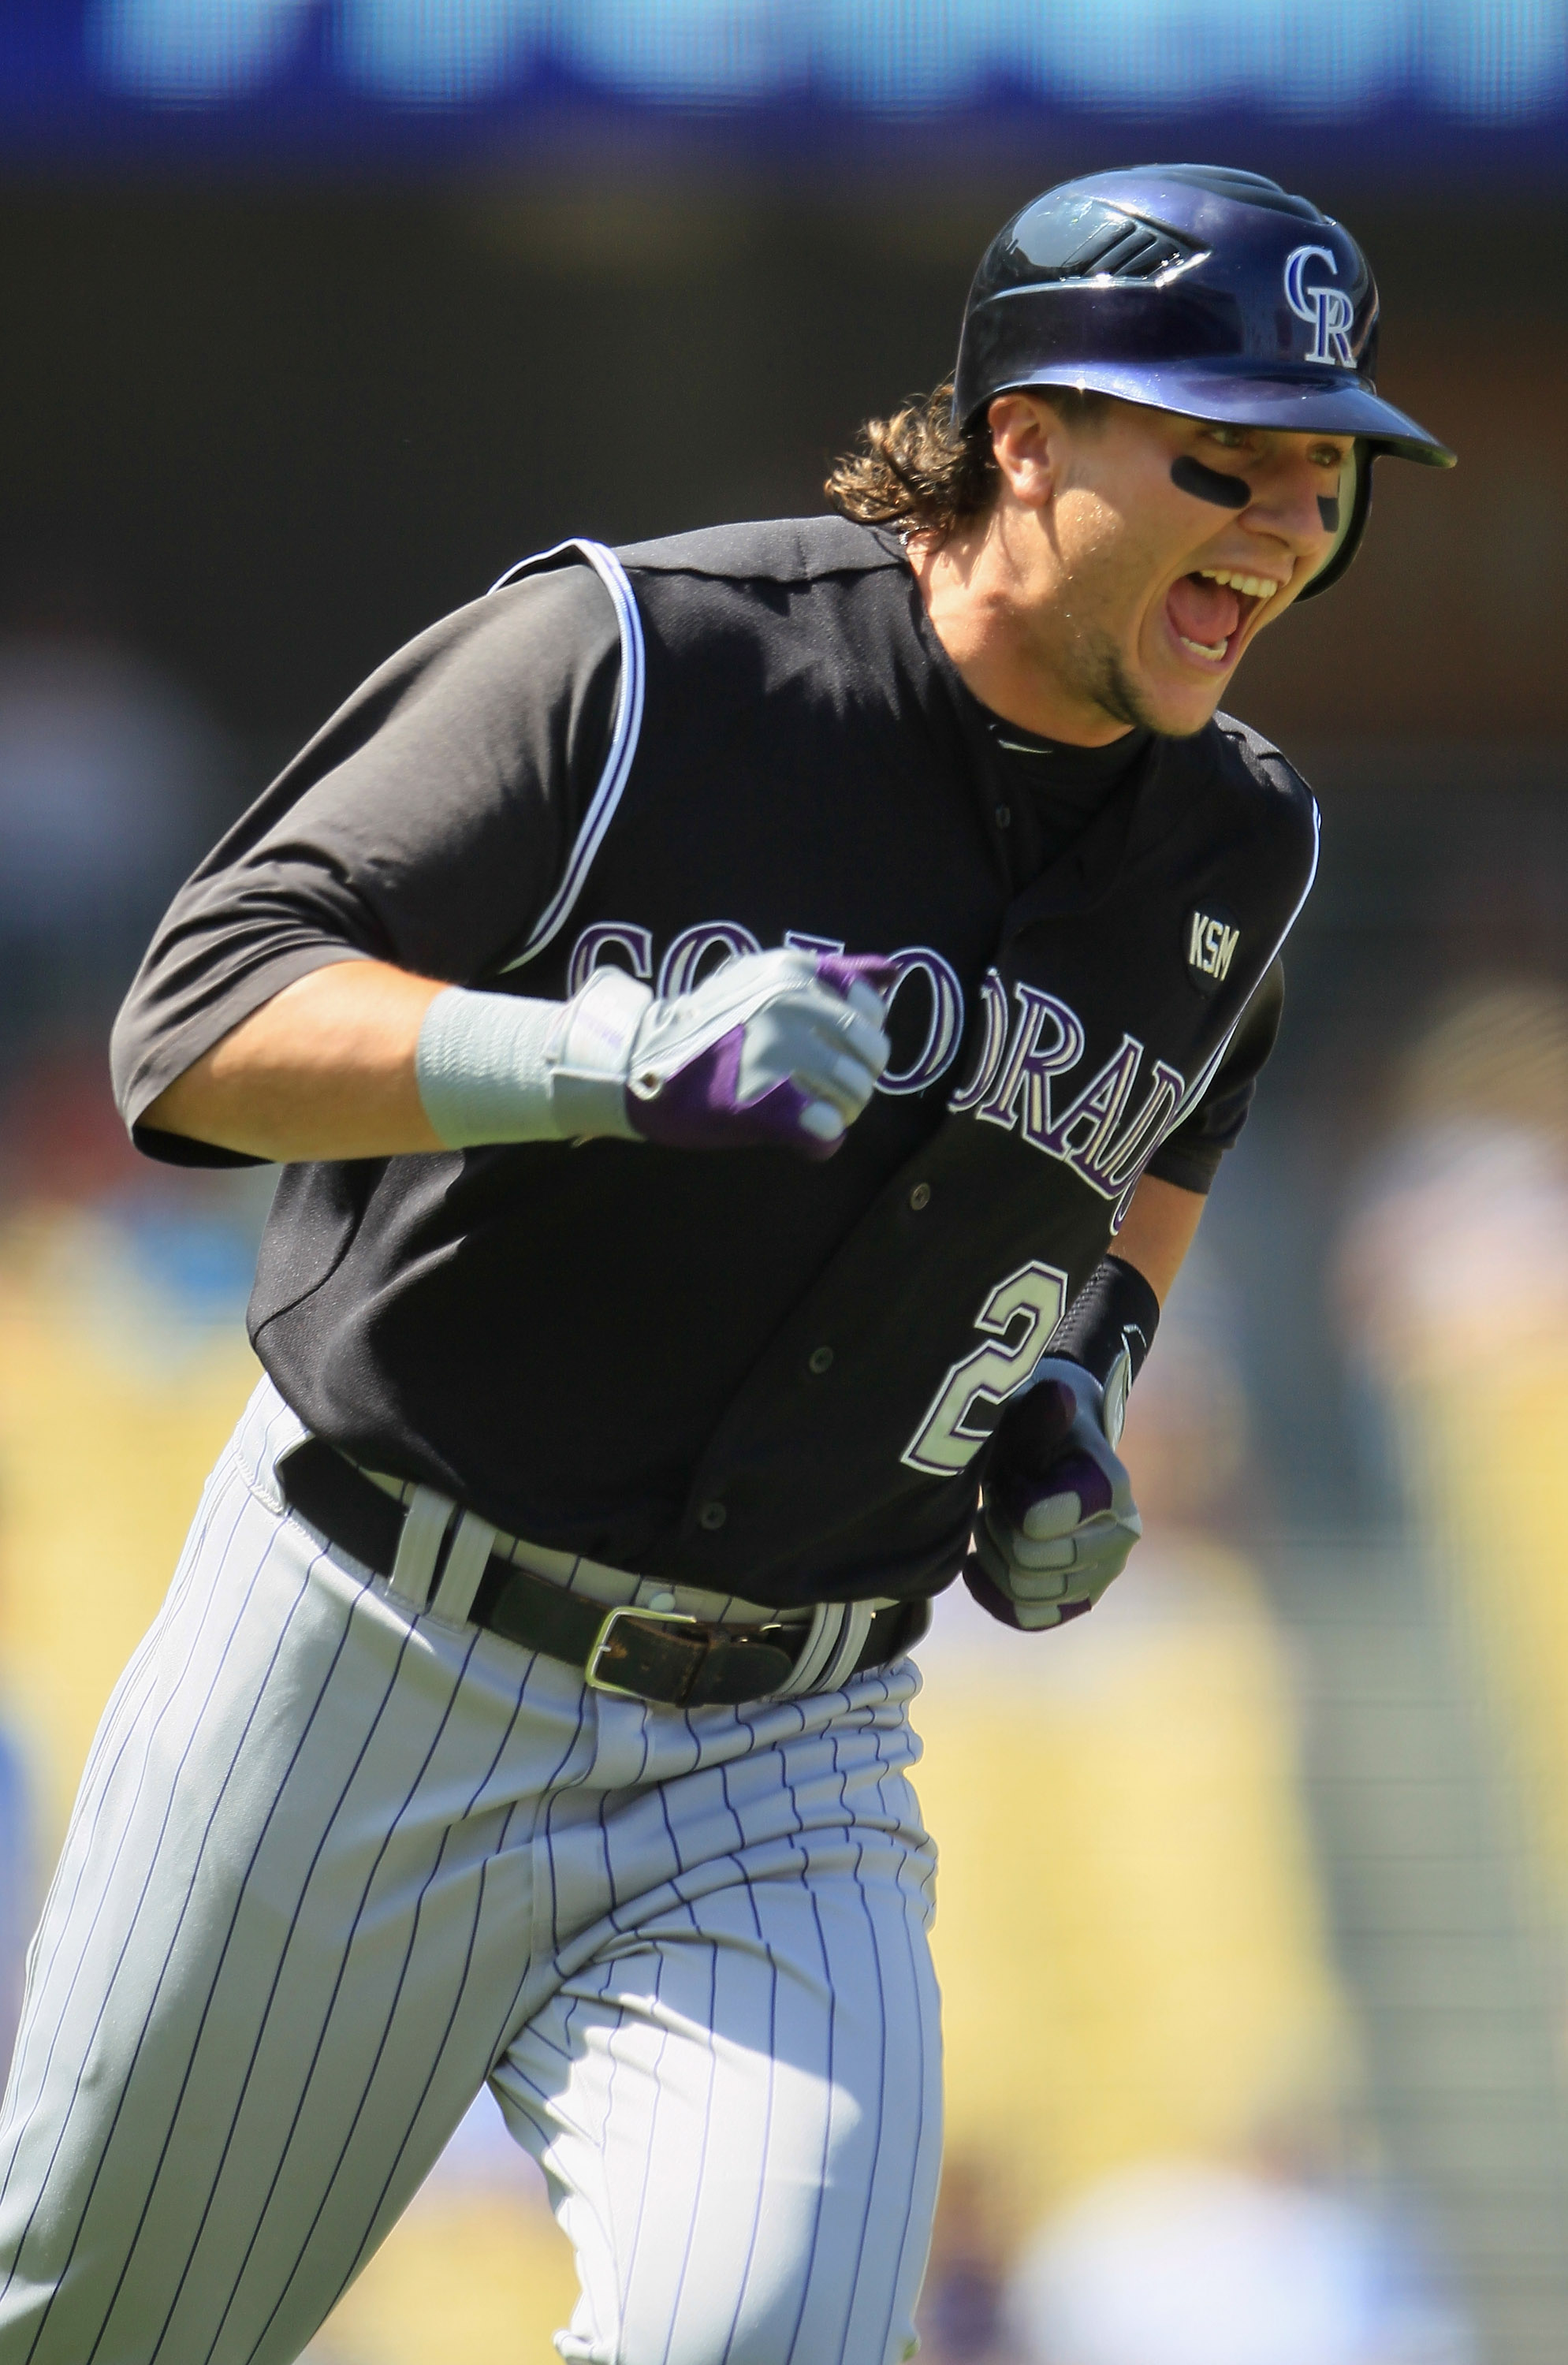 LOS ANGELES, CA - SEPTEMBER 18:  Troy Tulowitzki #2 of the Colorado Rockies celebrates as he rounds first base after hitting a two-run home run against the Los Angeles Dodgers in the first inning at Dodger Stadium on September 18, 2010 in Los Angeles, Cal